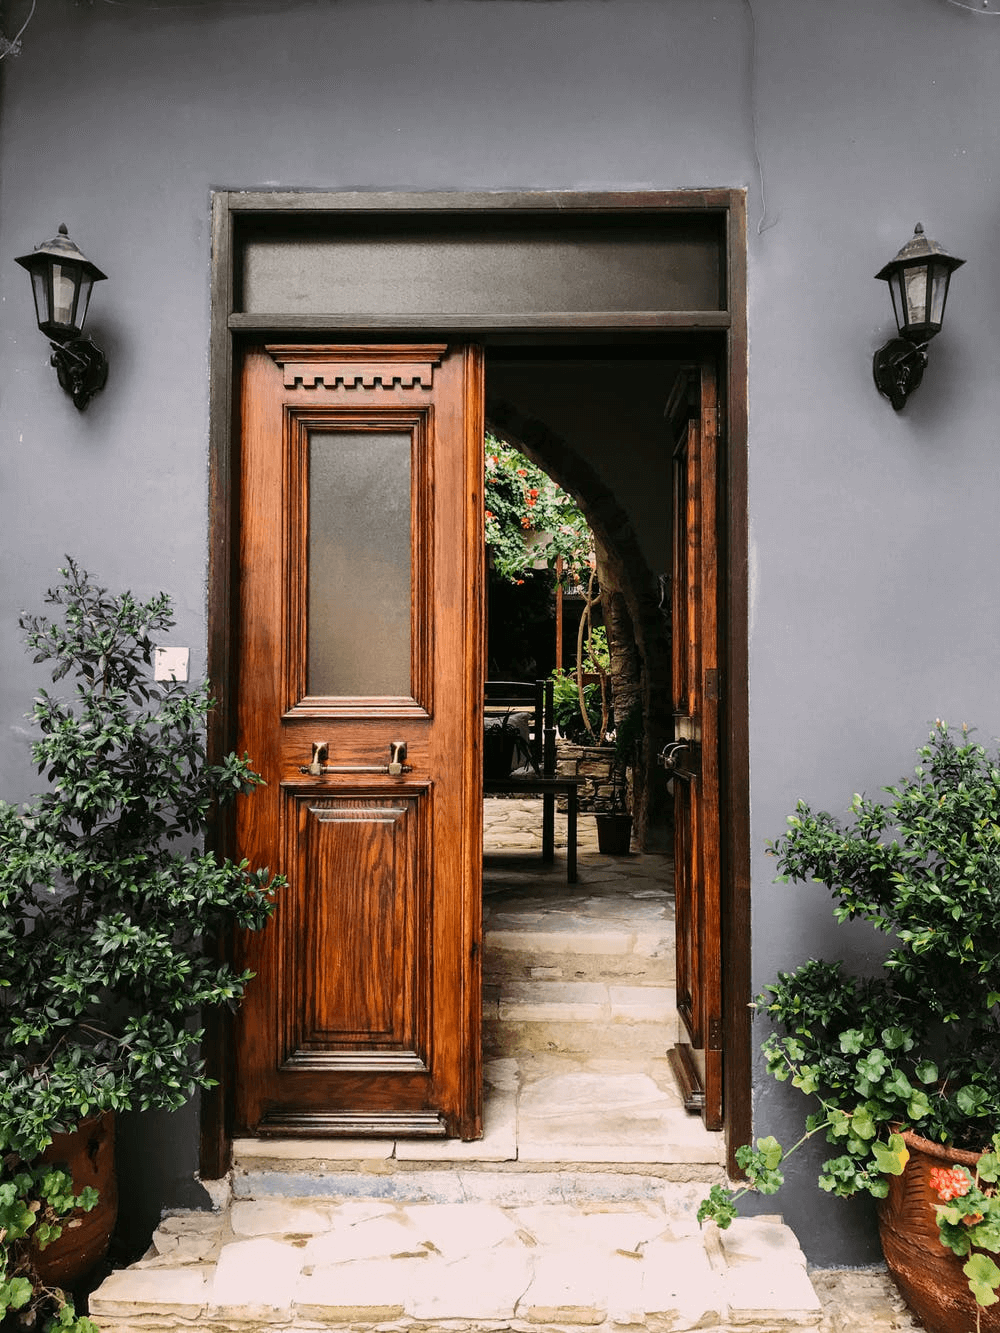 Latest Trends for Doors in 2020 - CenturyPly